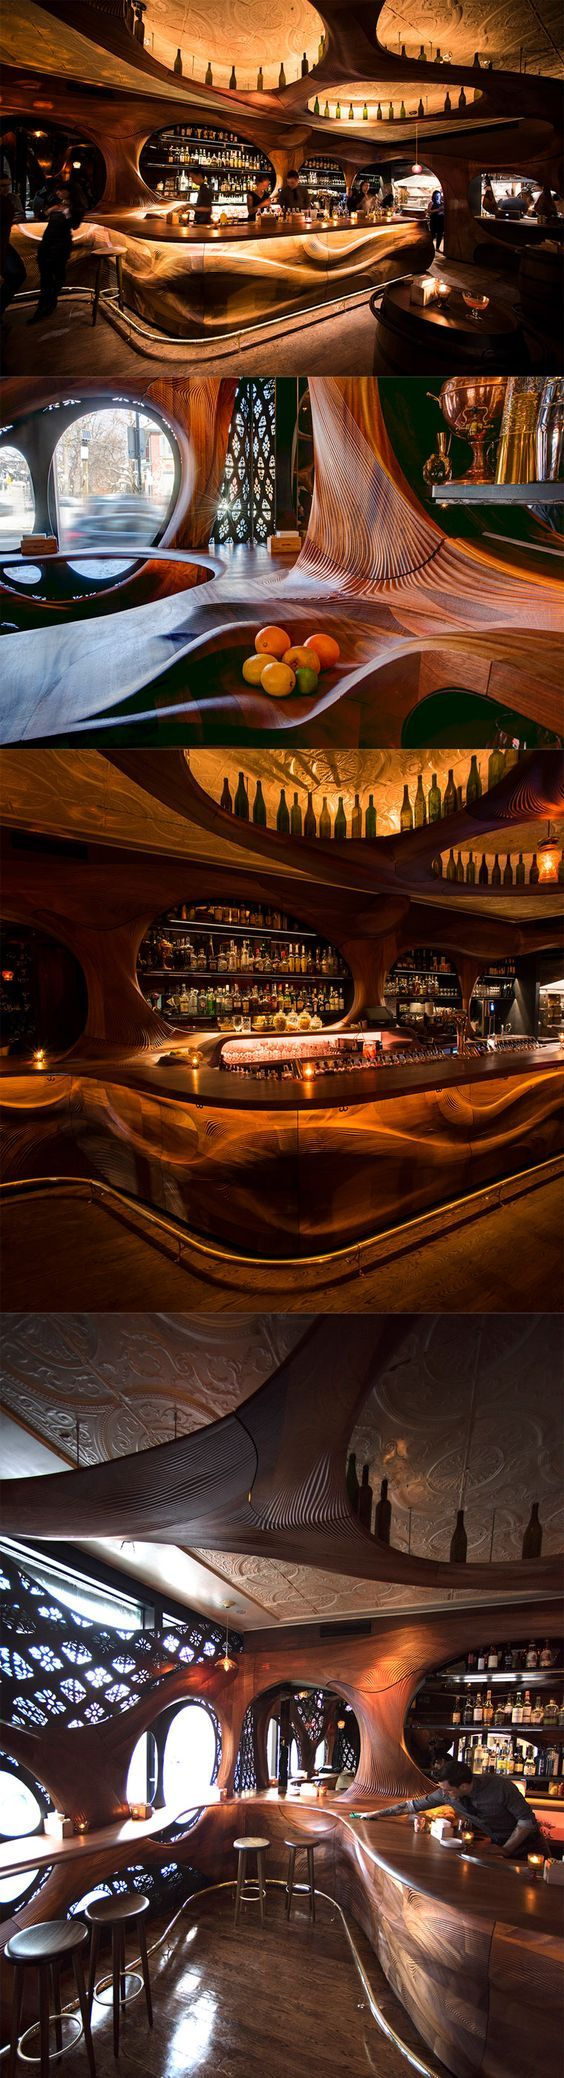 https://i.pinimg.com/736x/10/07/64/100764f790e5abb975522e5298062f1b--bar-raval-interior-design-blogs.jpg